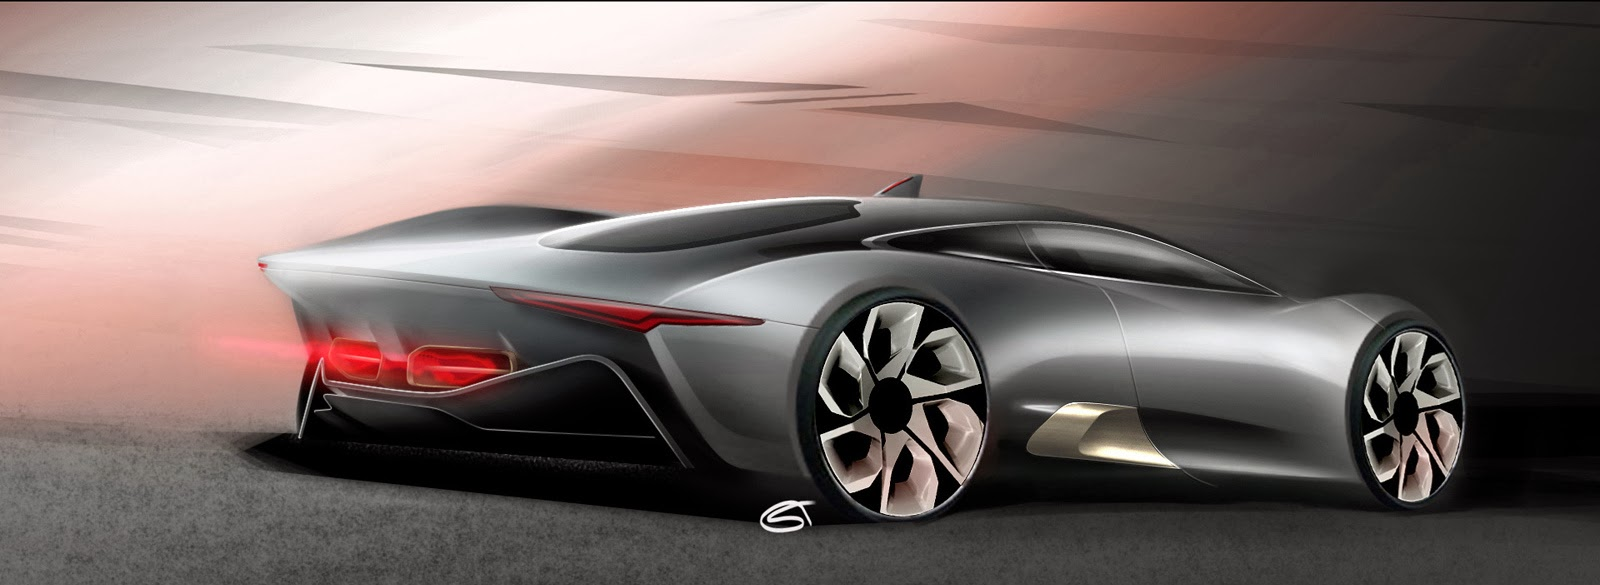 Exceptional Jaguar Concept Cars Hd Wallpaper And Photos